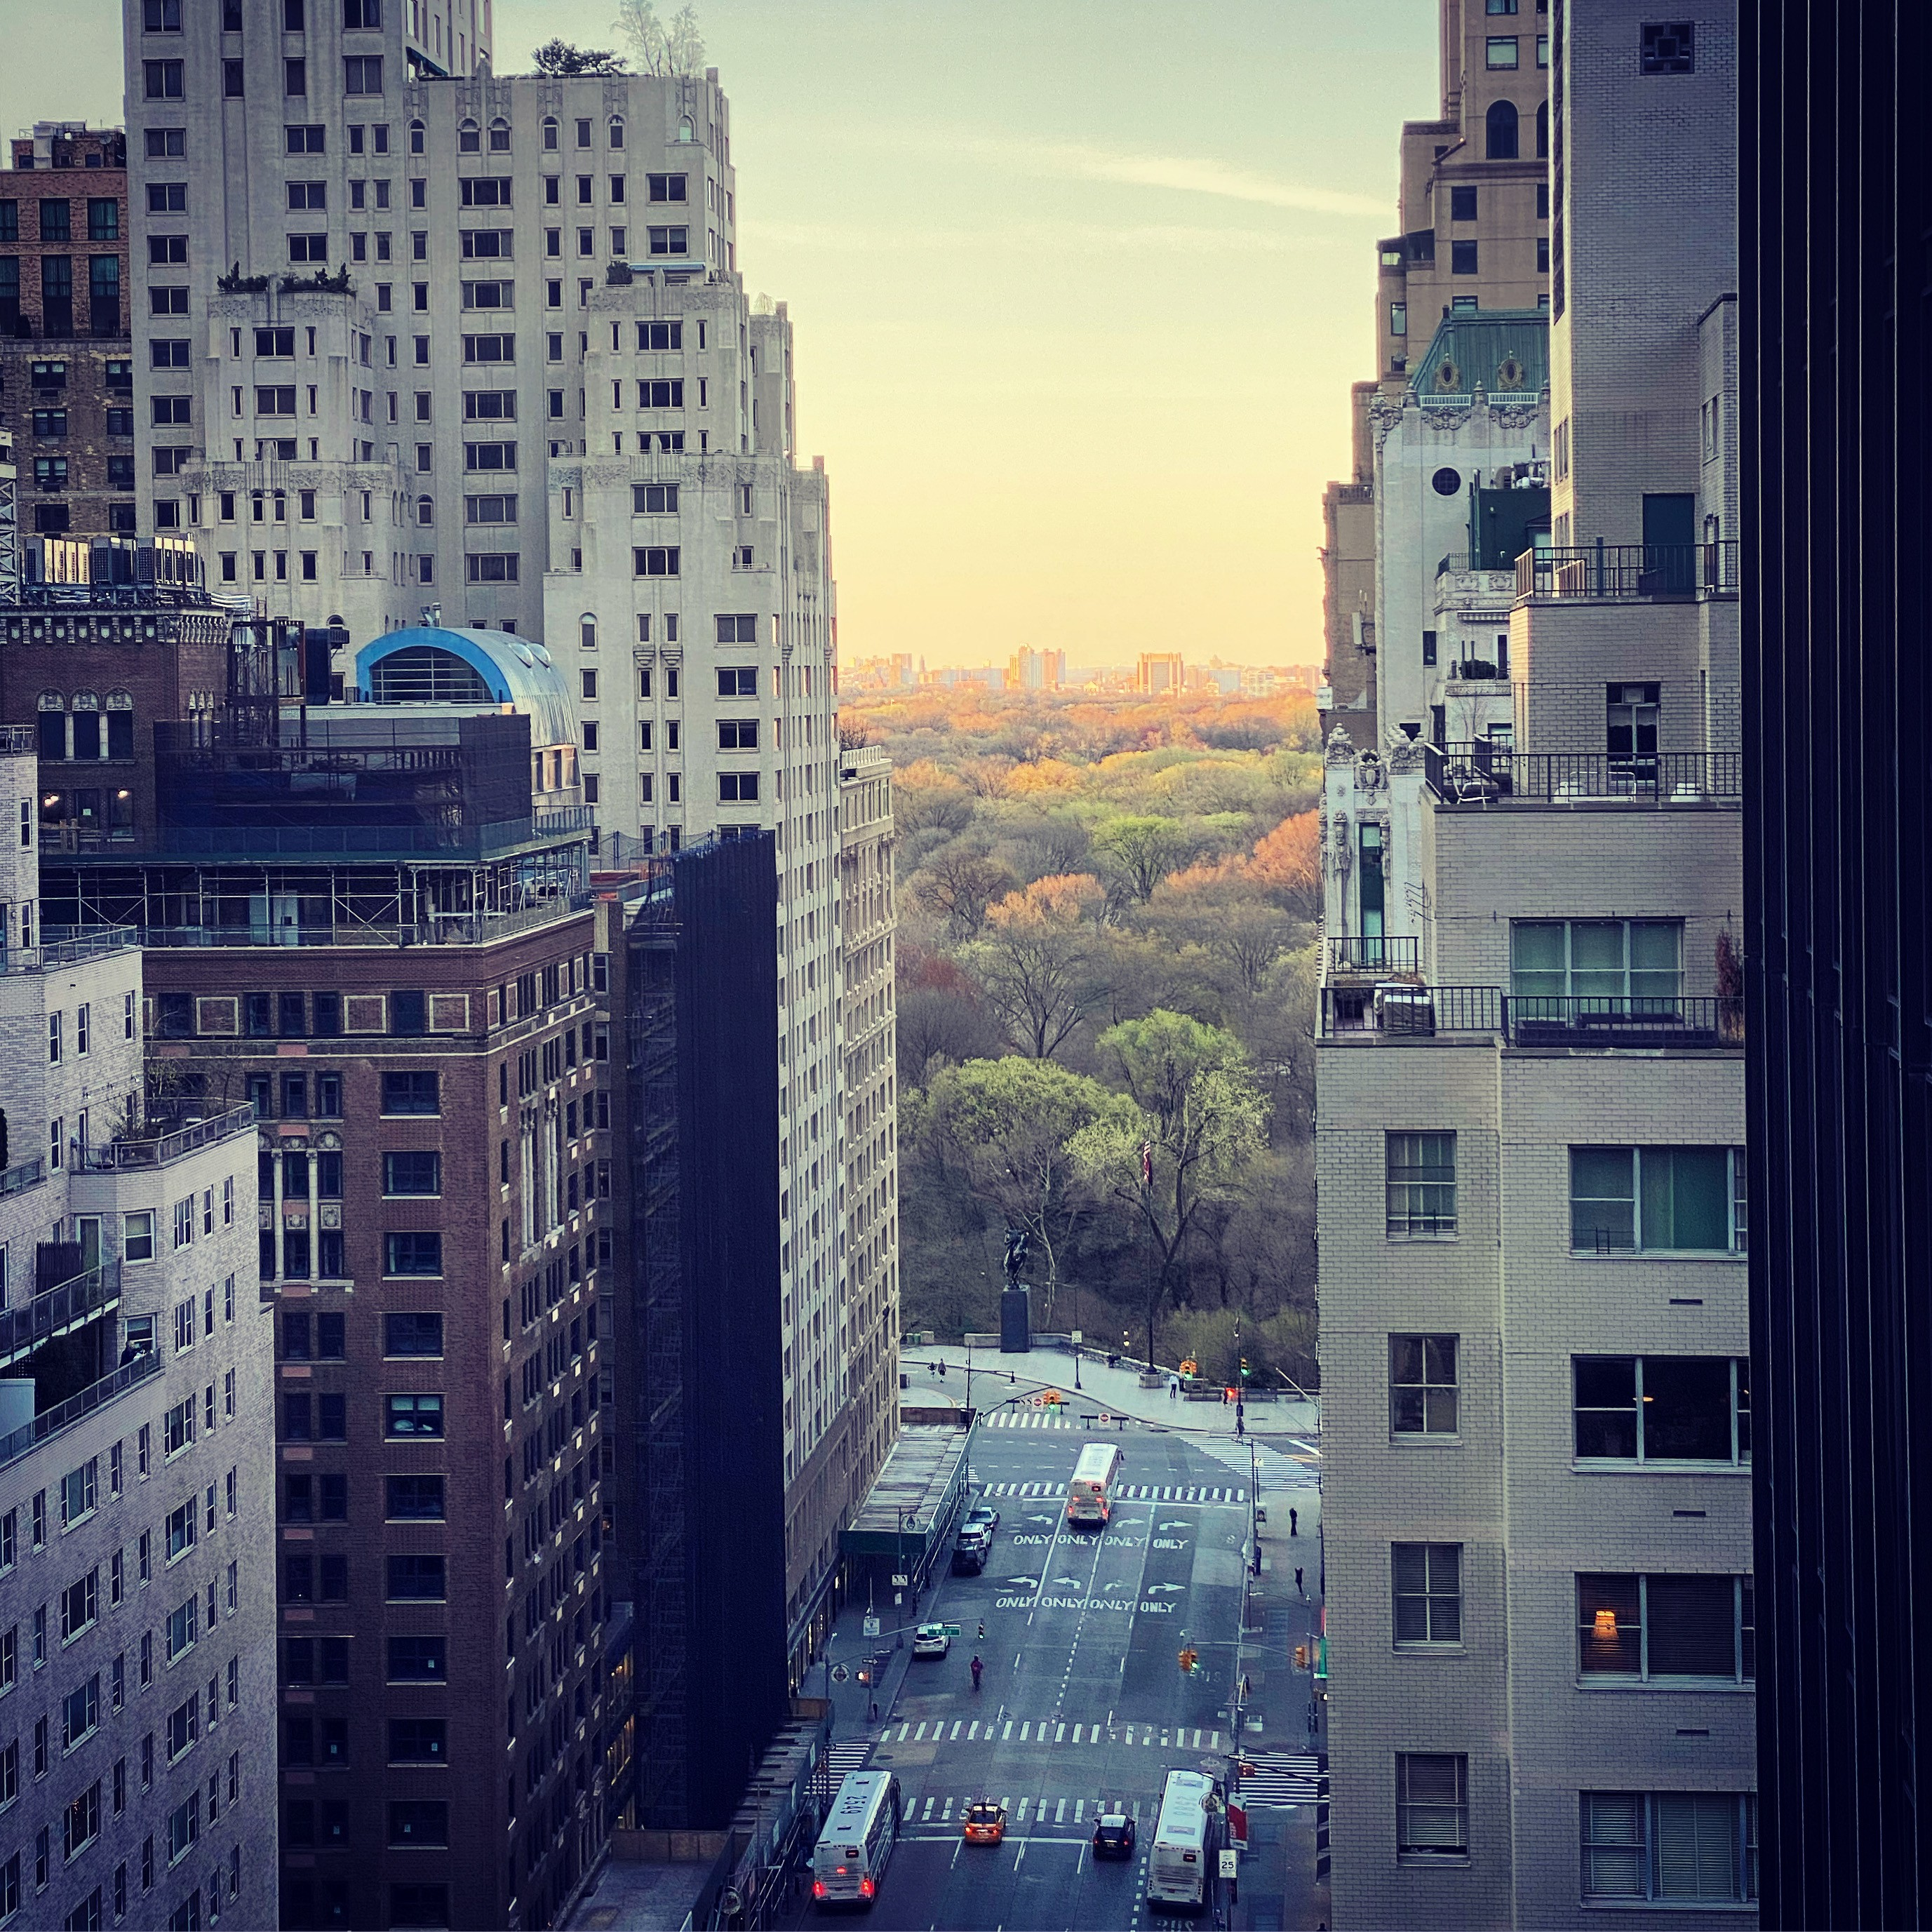 home-view-6th-avenue-central-park.JPG